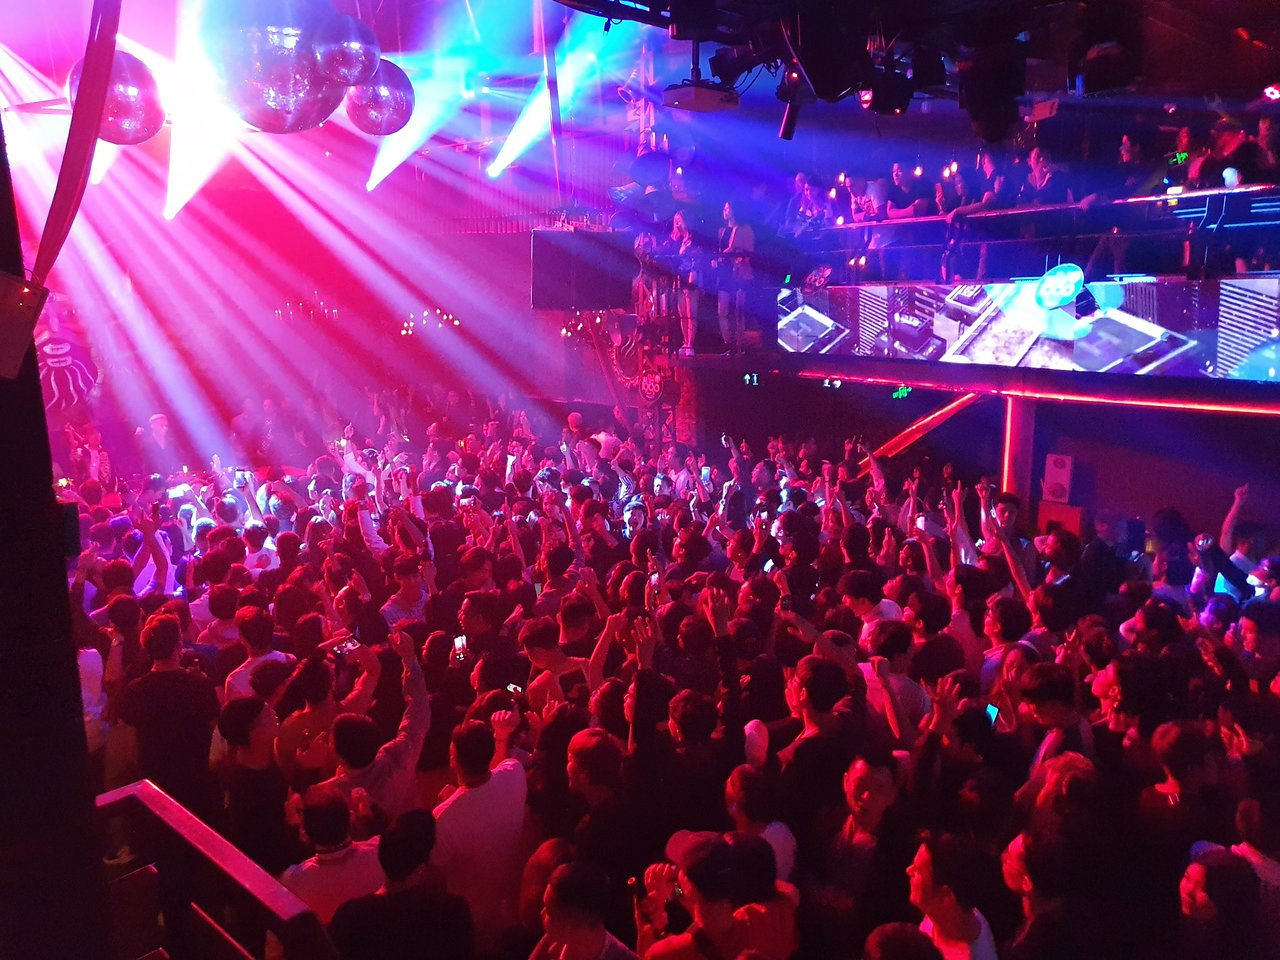 Best Nightlife Place To Have Fun in Hanoi-1900 Le Theatre